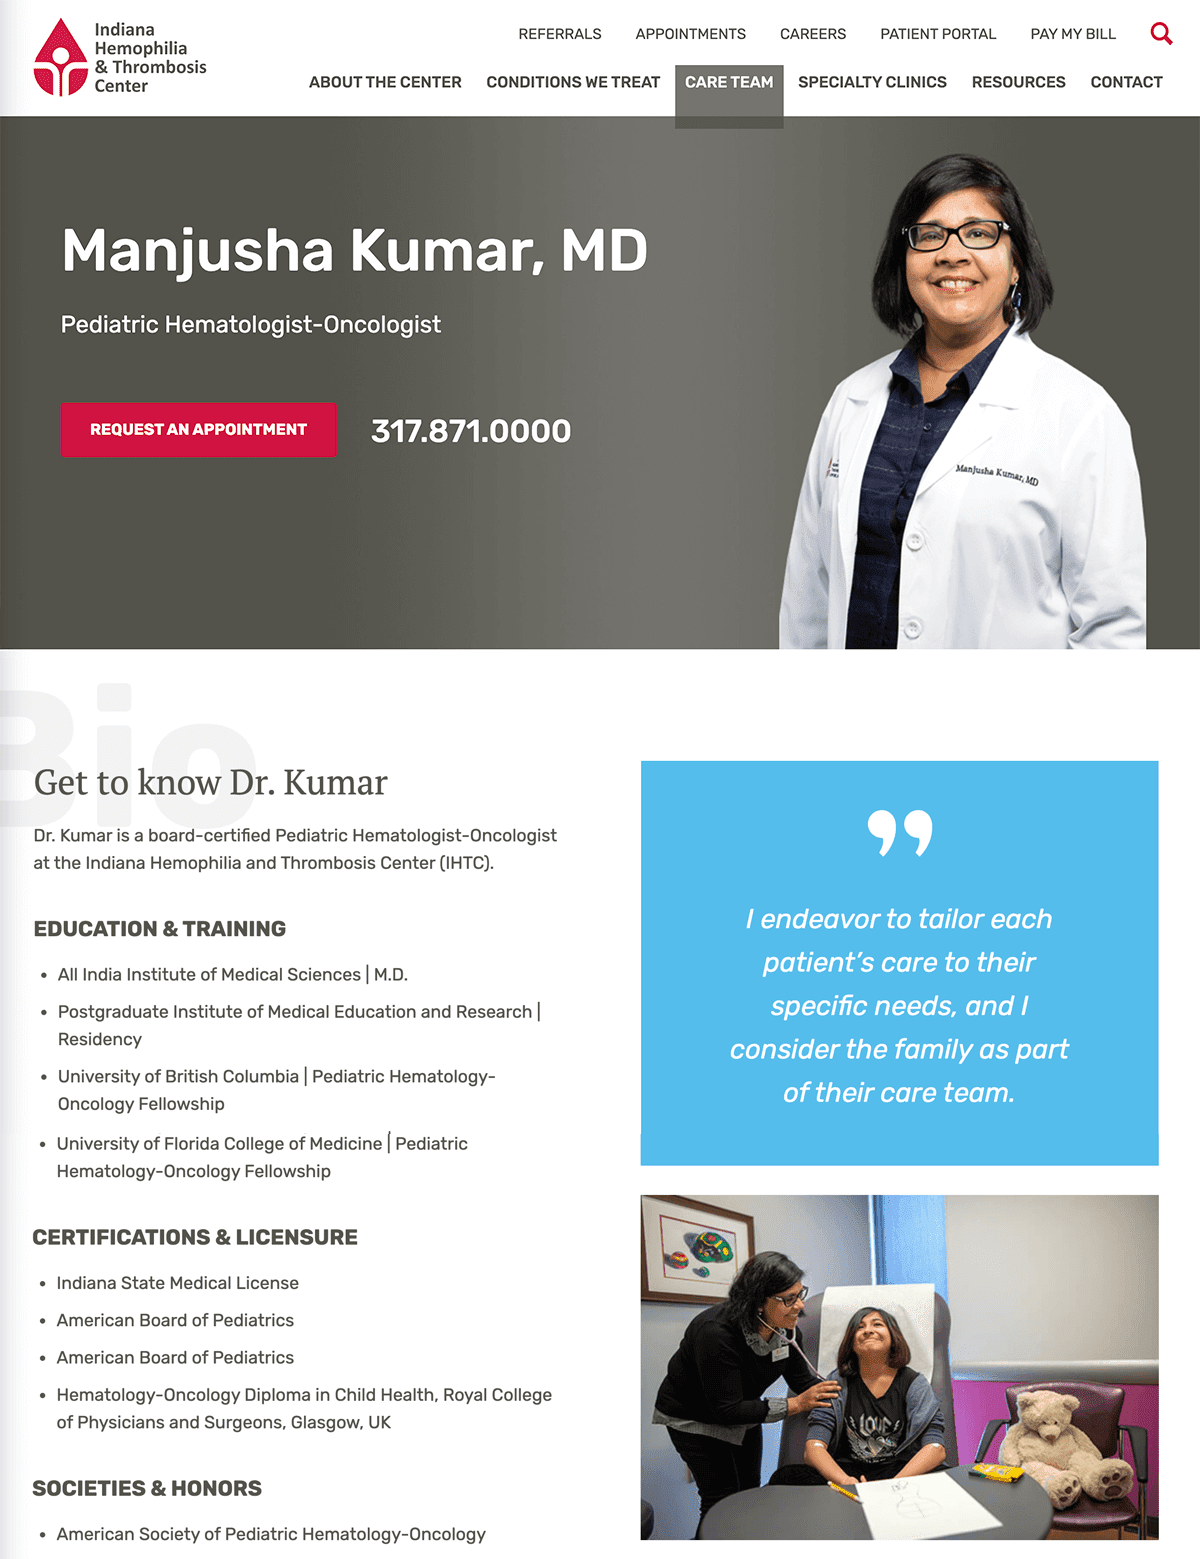 Screengrab of one of Indiana Hemophilia and Thrombosis Center's physician bio detail webpages